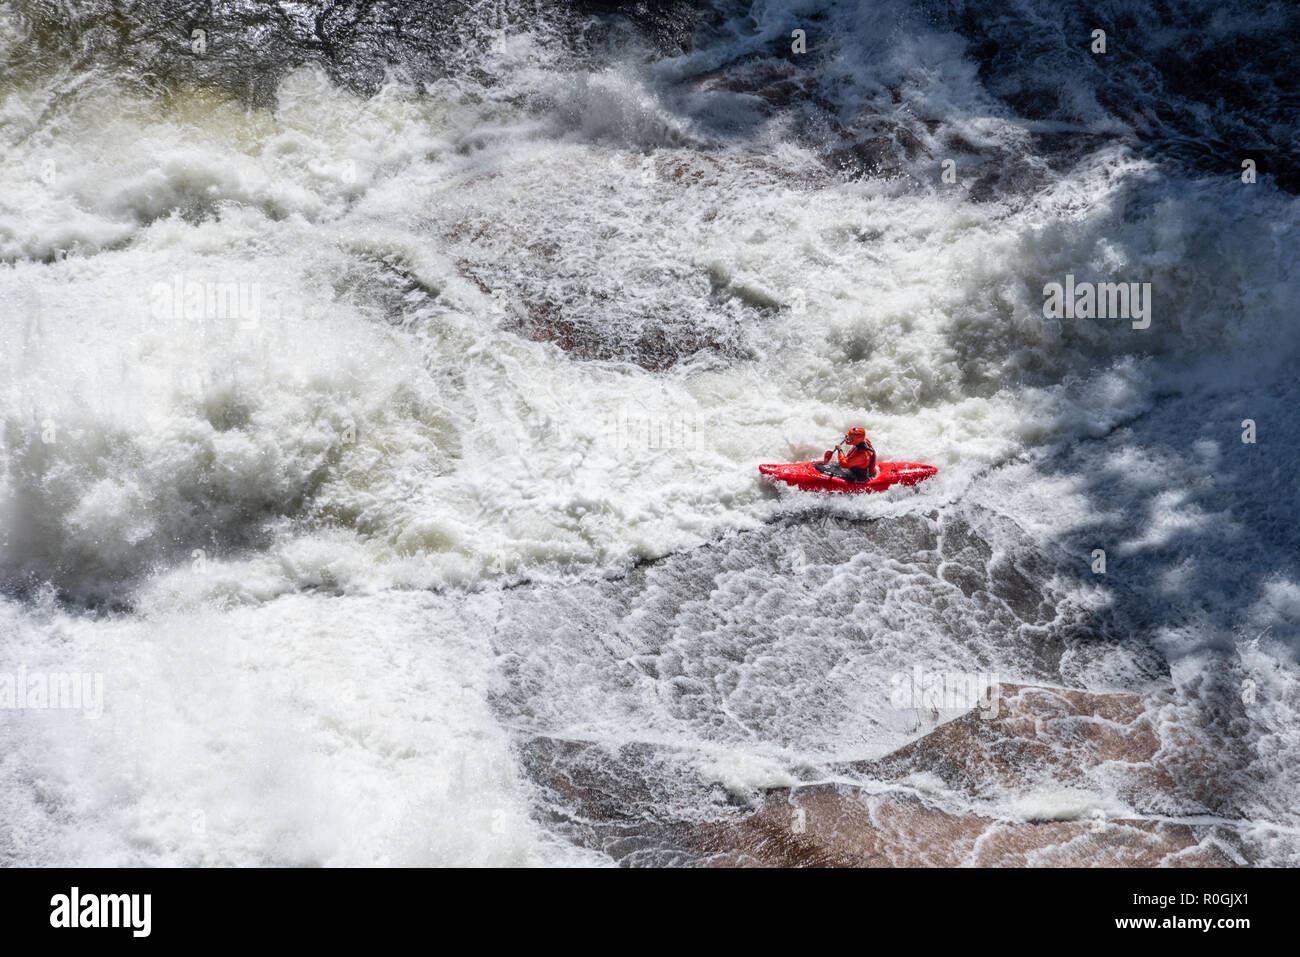 Whitewater kayaker navigating Oceana, a Class V rapid, at Tallulah Gorge during an annual whitewater release from Tallulah Falls Dam in North Georgia. - Stock Image